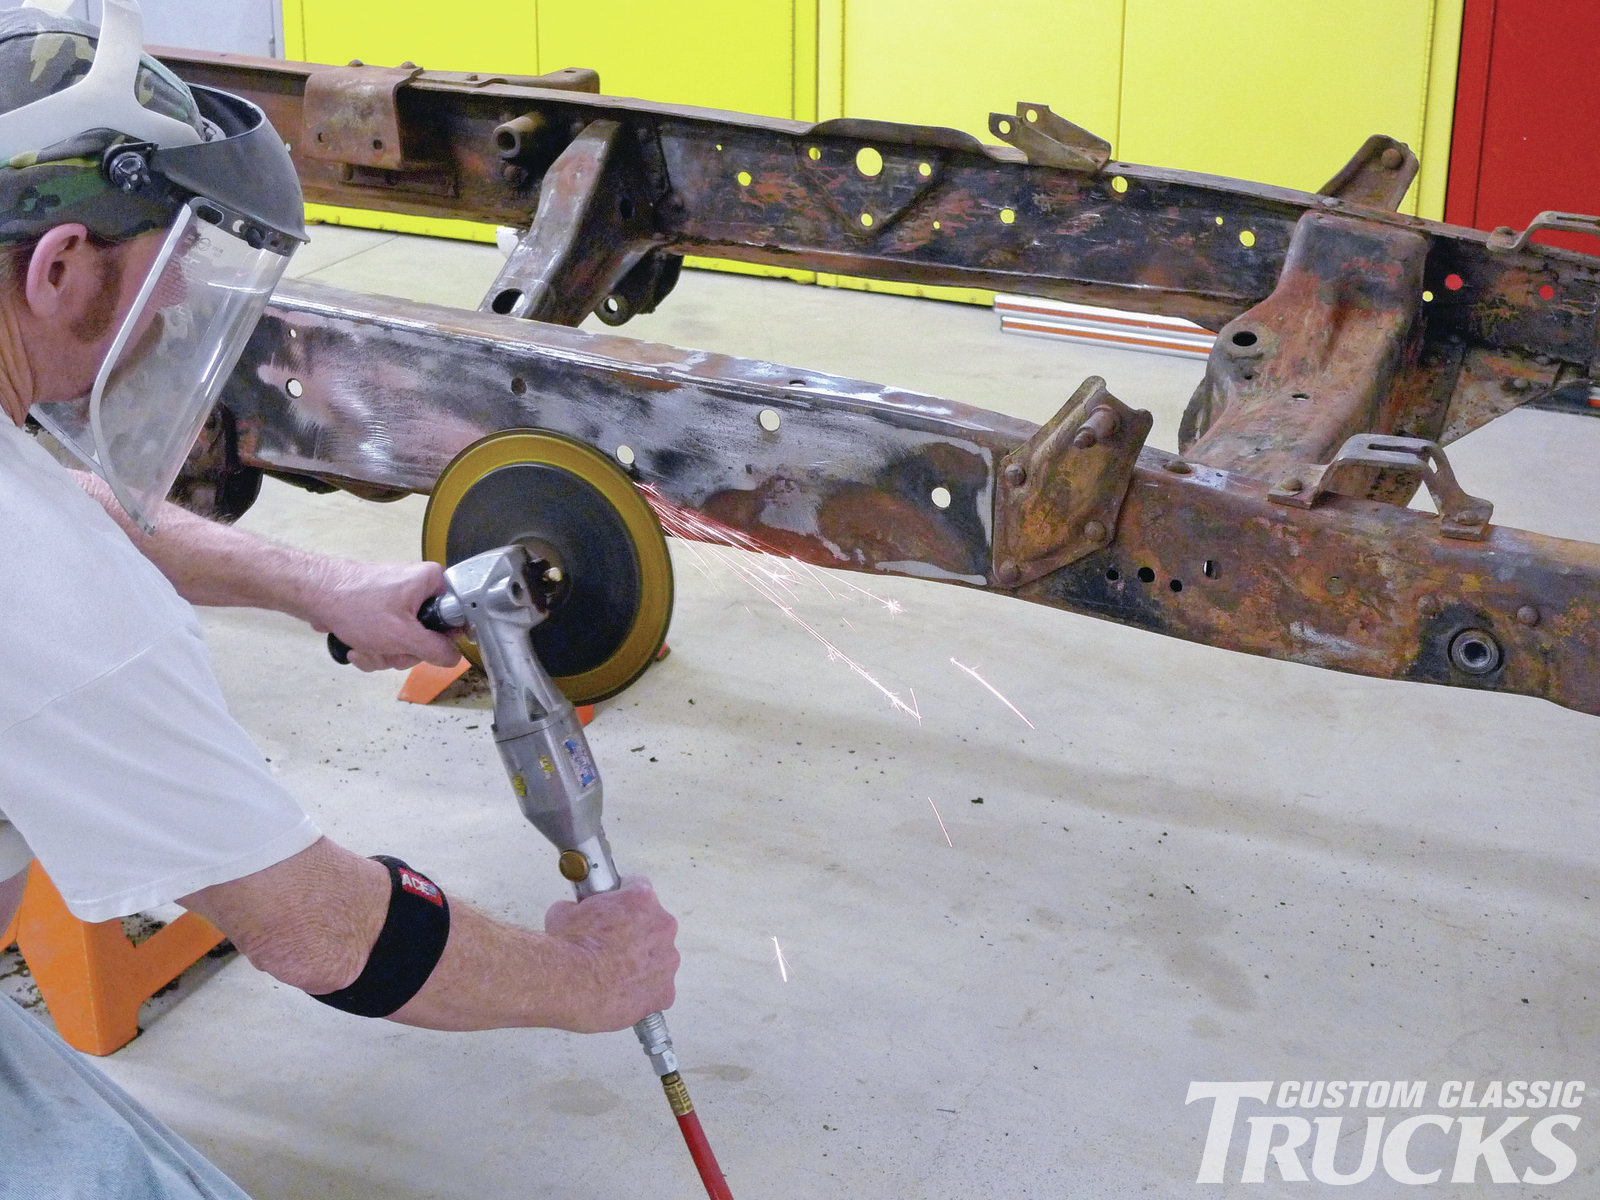 3. Although we're now satisfied that these twice-repaired 'rails are true in trajectory, they're not without witness marks. Here a worn 3M body disc on a Harbor Freight, Central Pneumatic buffer/grinder works as a highlighter of sorts. The large dark areas are low, and they won't disappear after powdercoating.